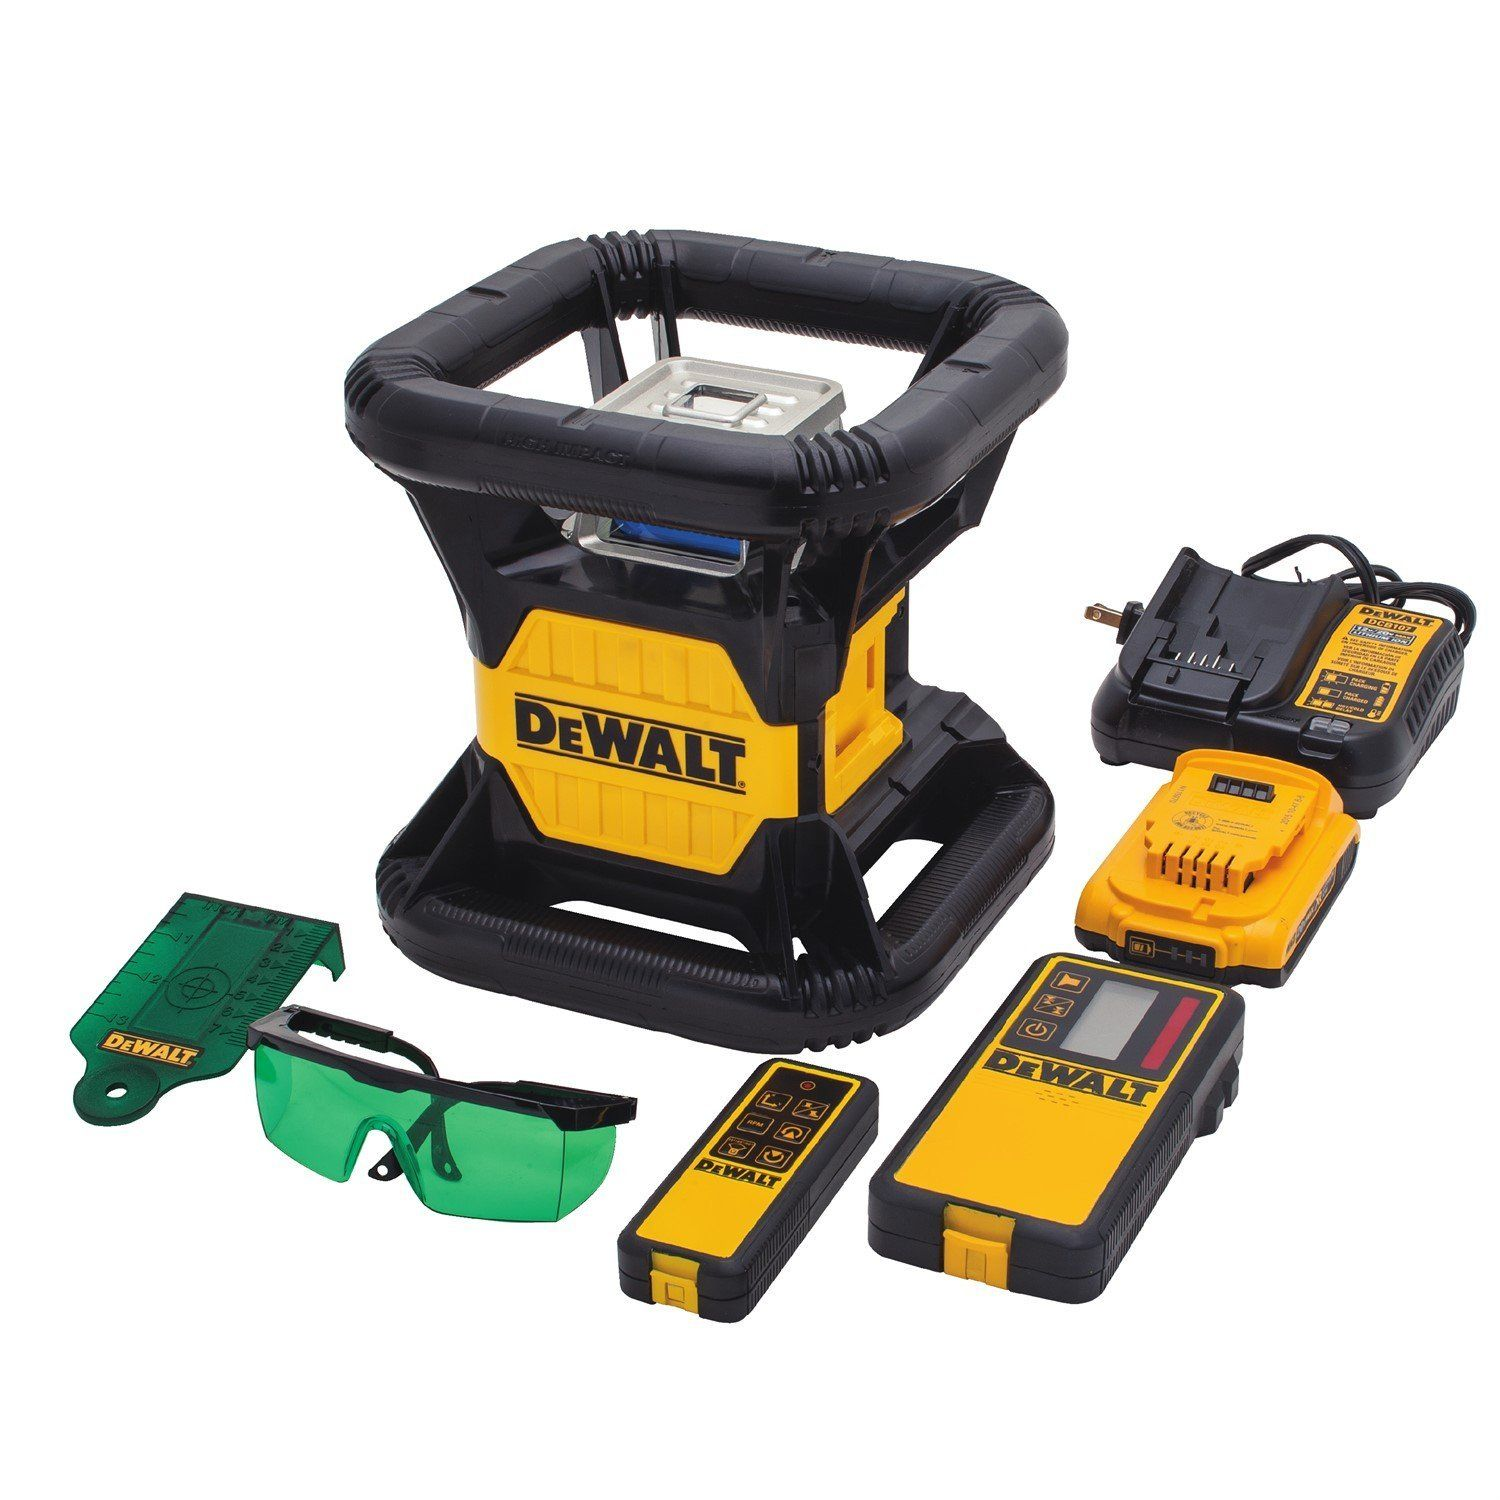 Top 16 Best Green Laser Levels Of 2020 February Update Dewalt Tools Tools Rotary